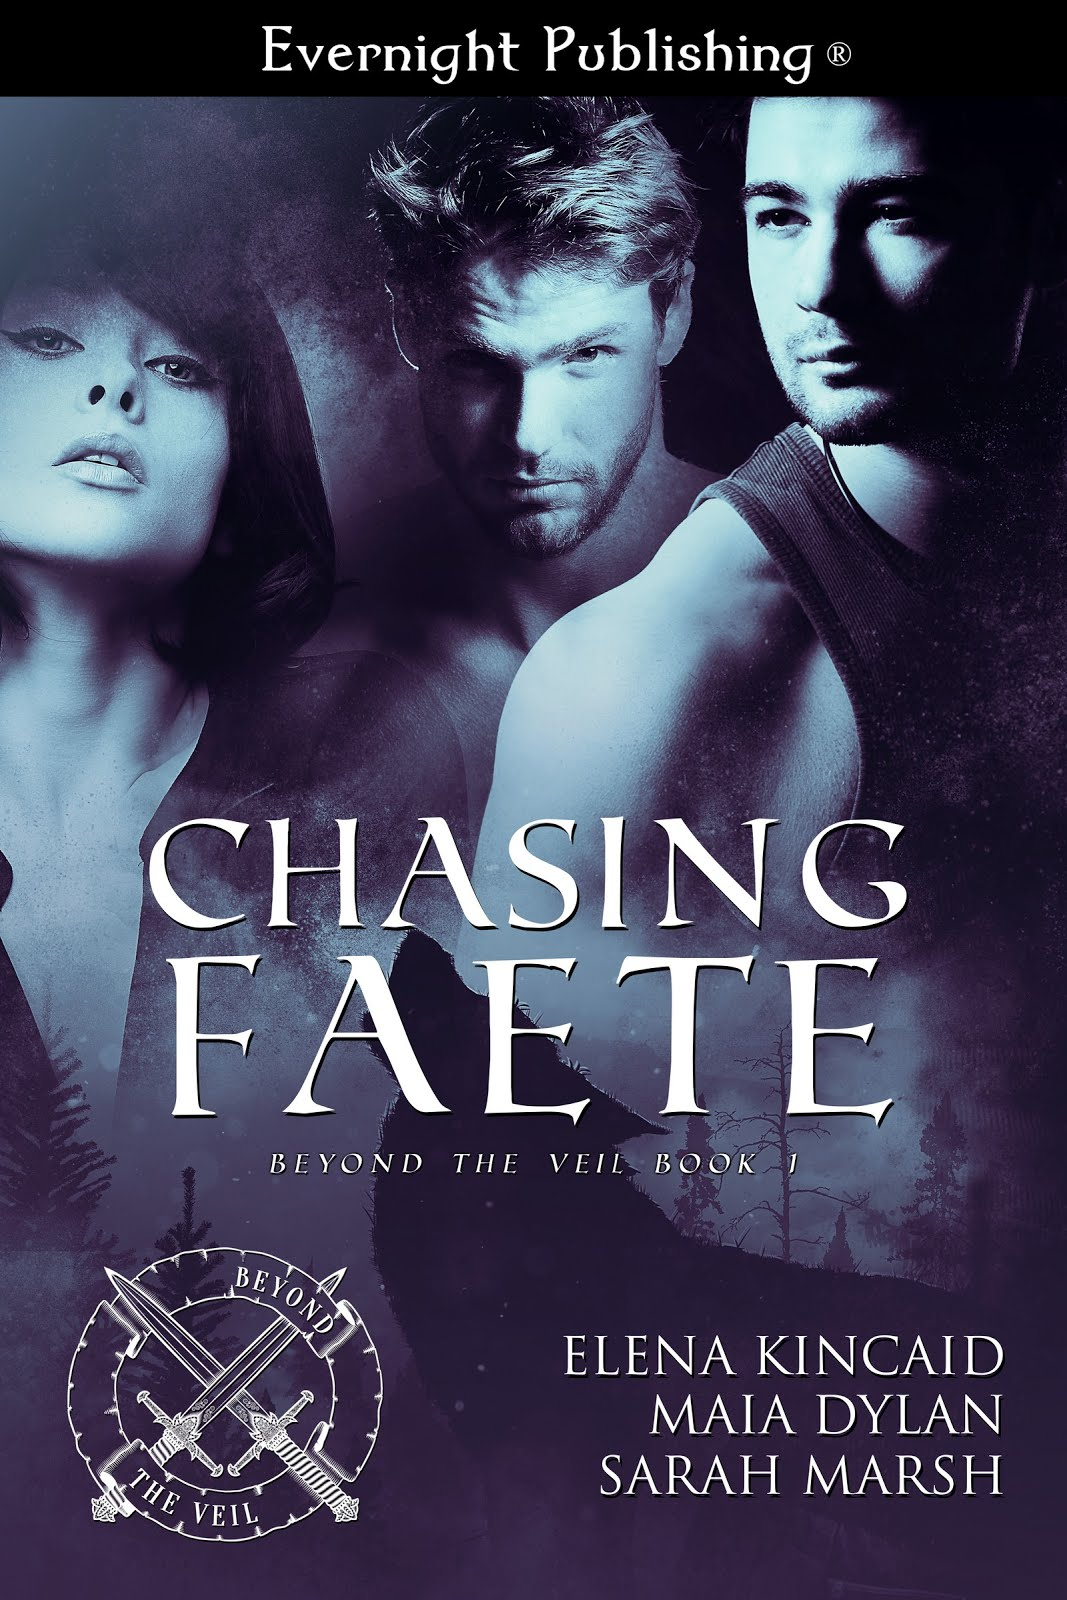 CHASING FAETE (Beyond The Veil #1)